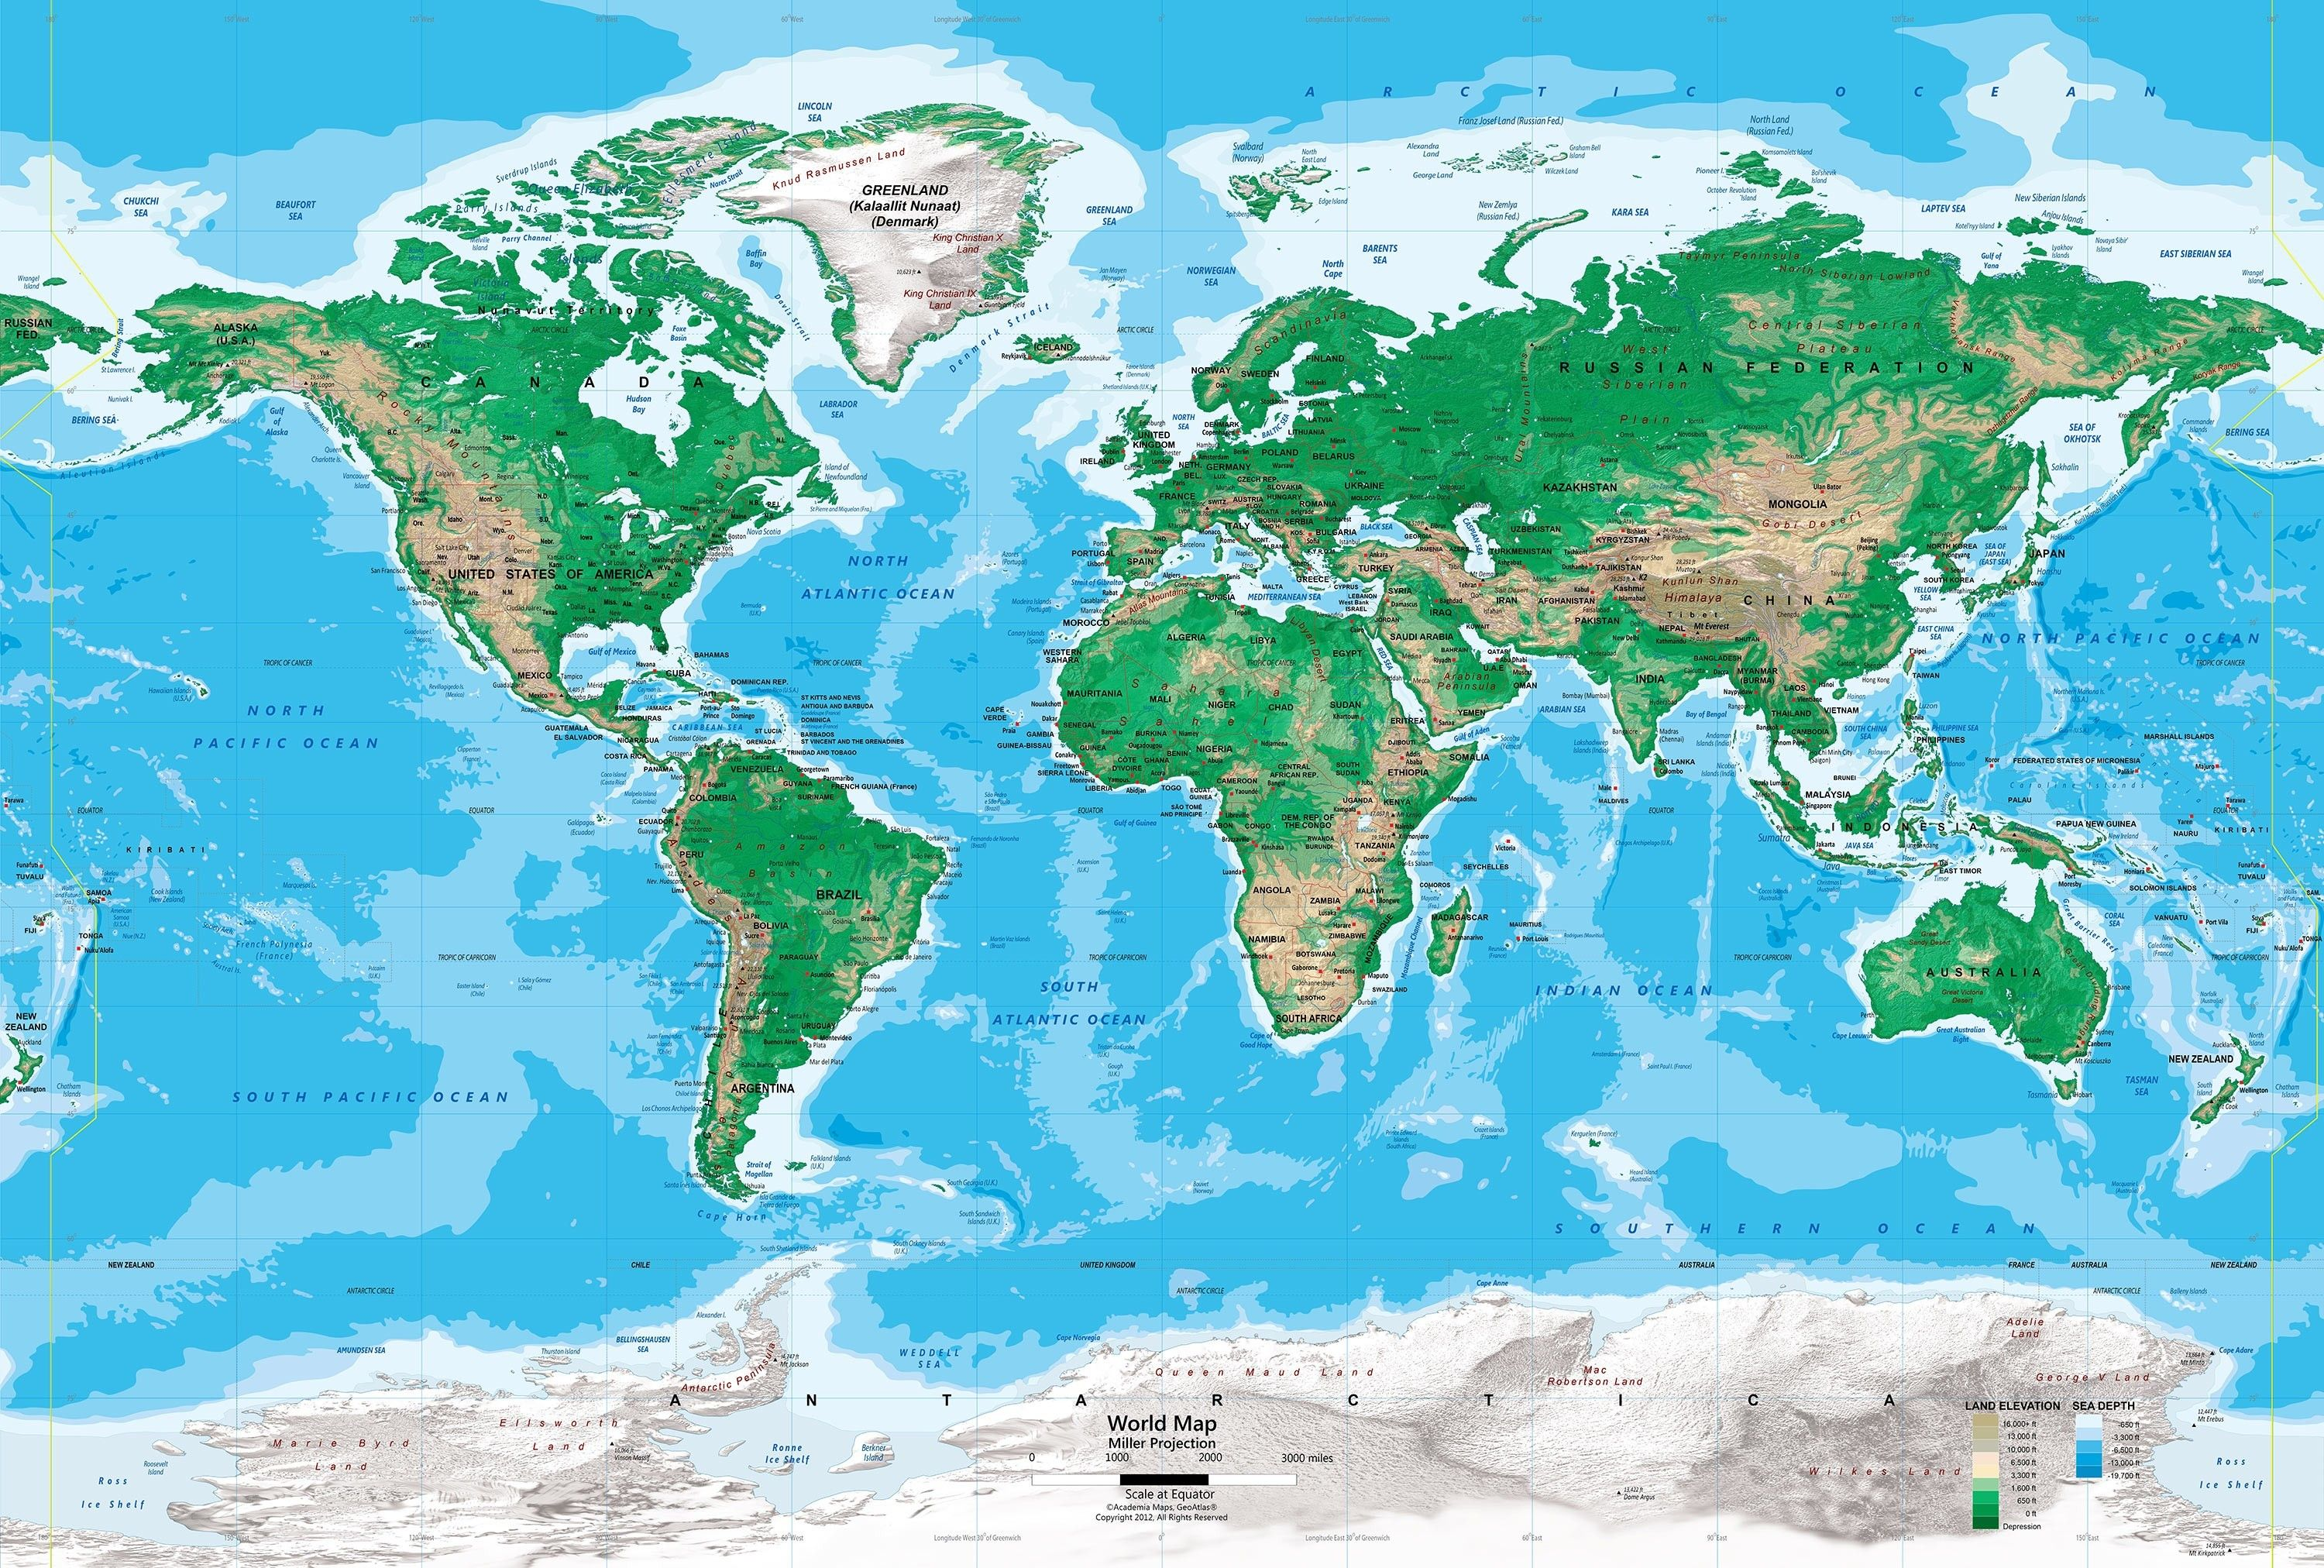 World Map By Elevation Best Of World Elevation Map Scrapsofme New